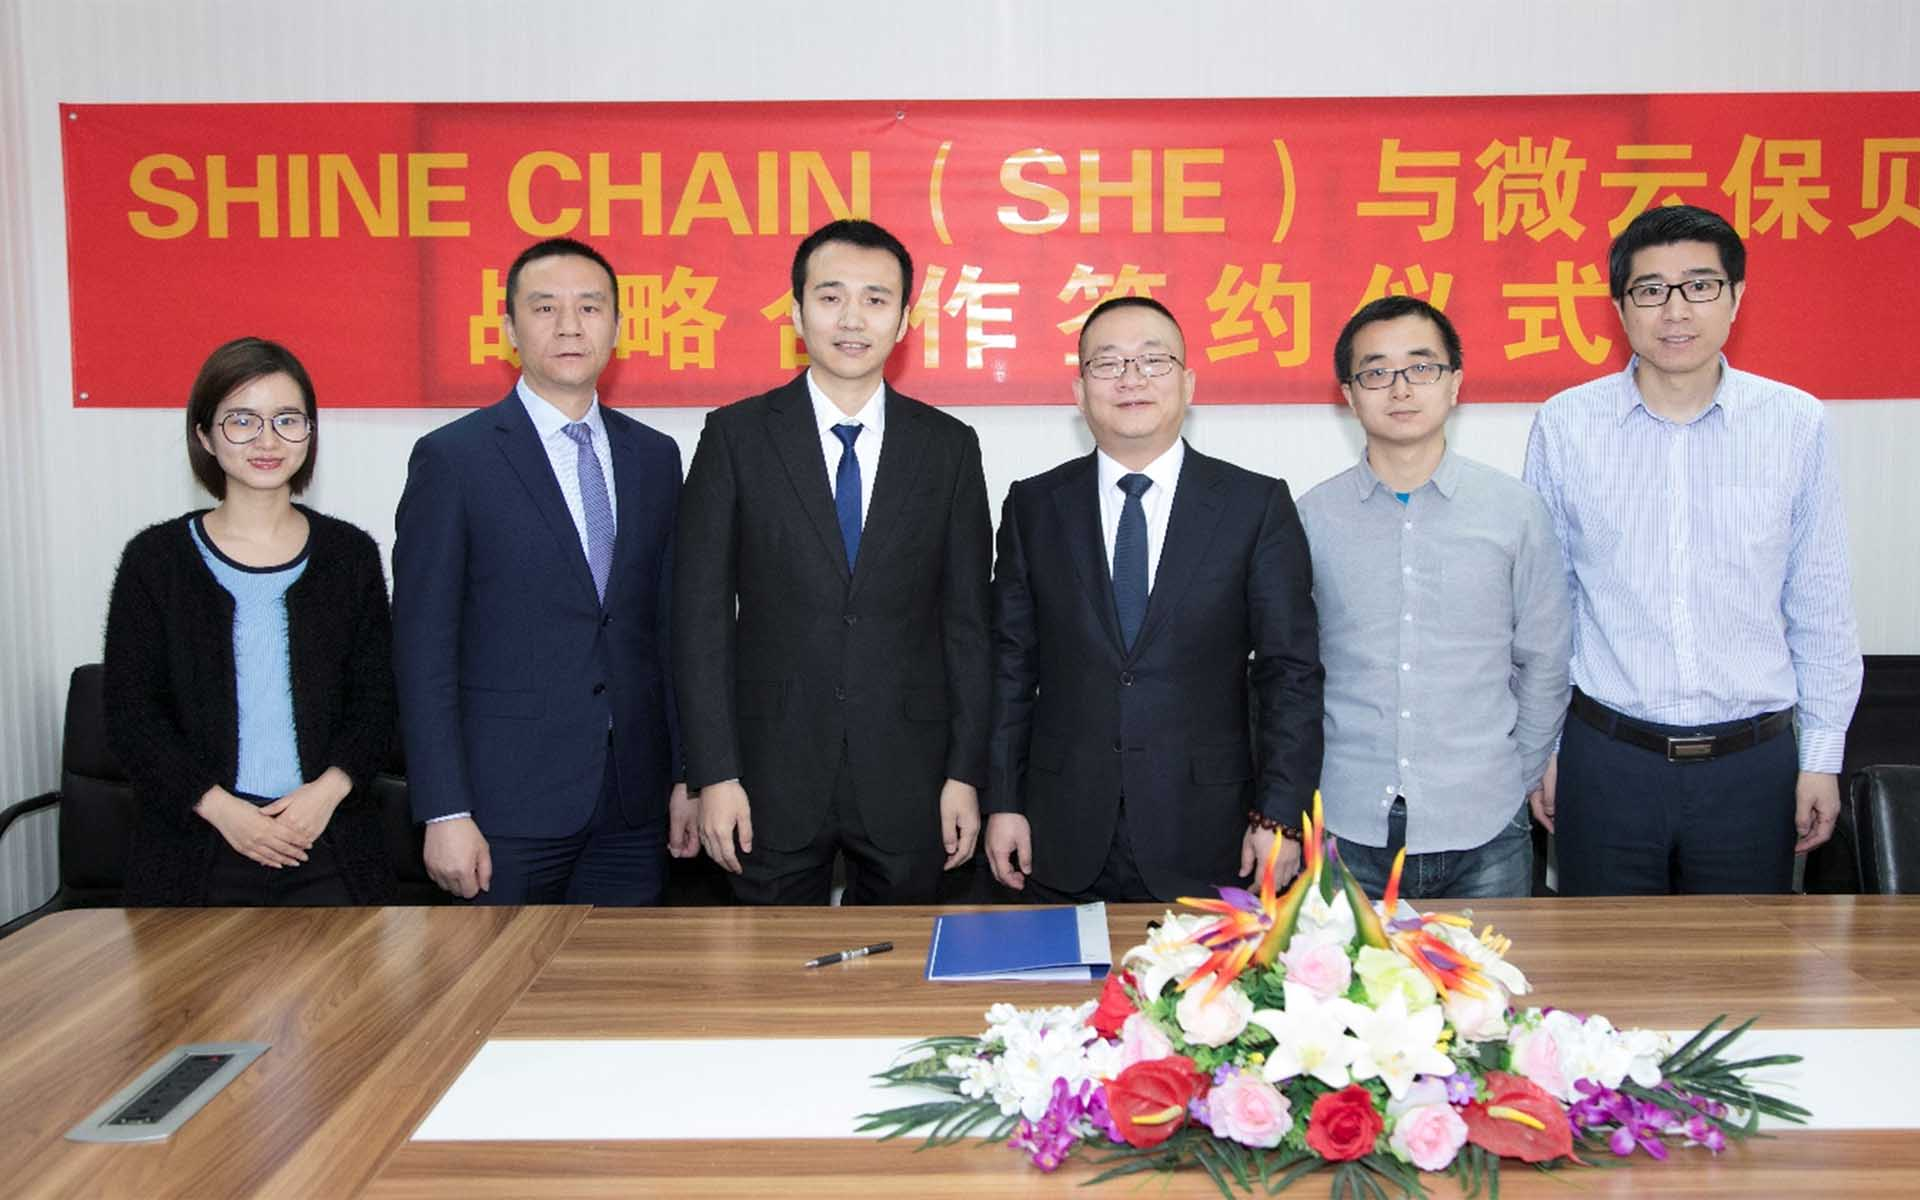 ShineChain and Weiyunbaobei Officially Announce Strategic Cooperation